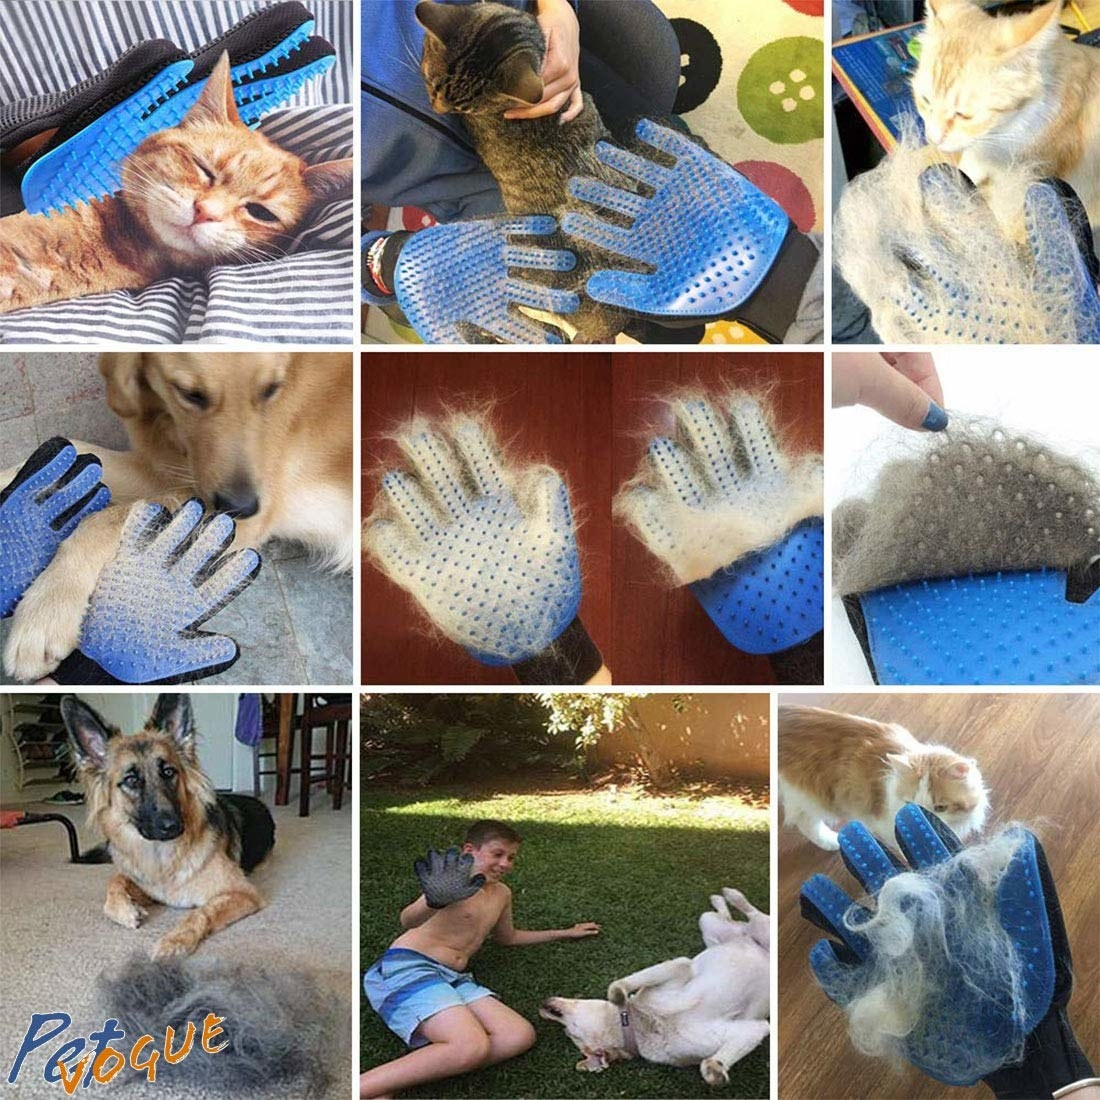 Images of pet grooming glove used on dogs and cats